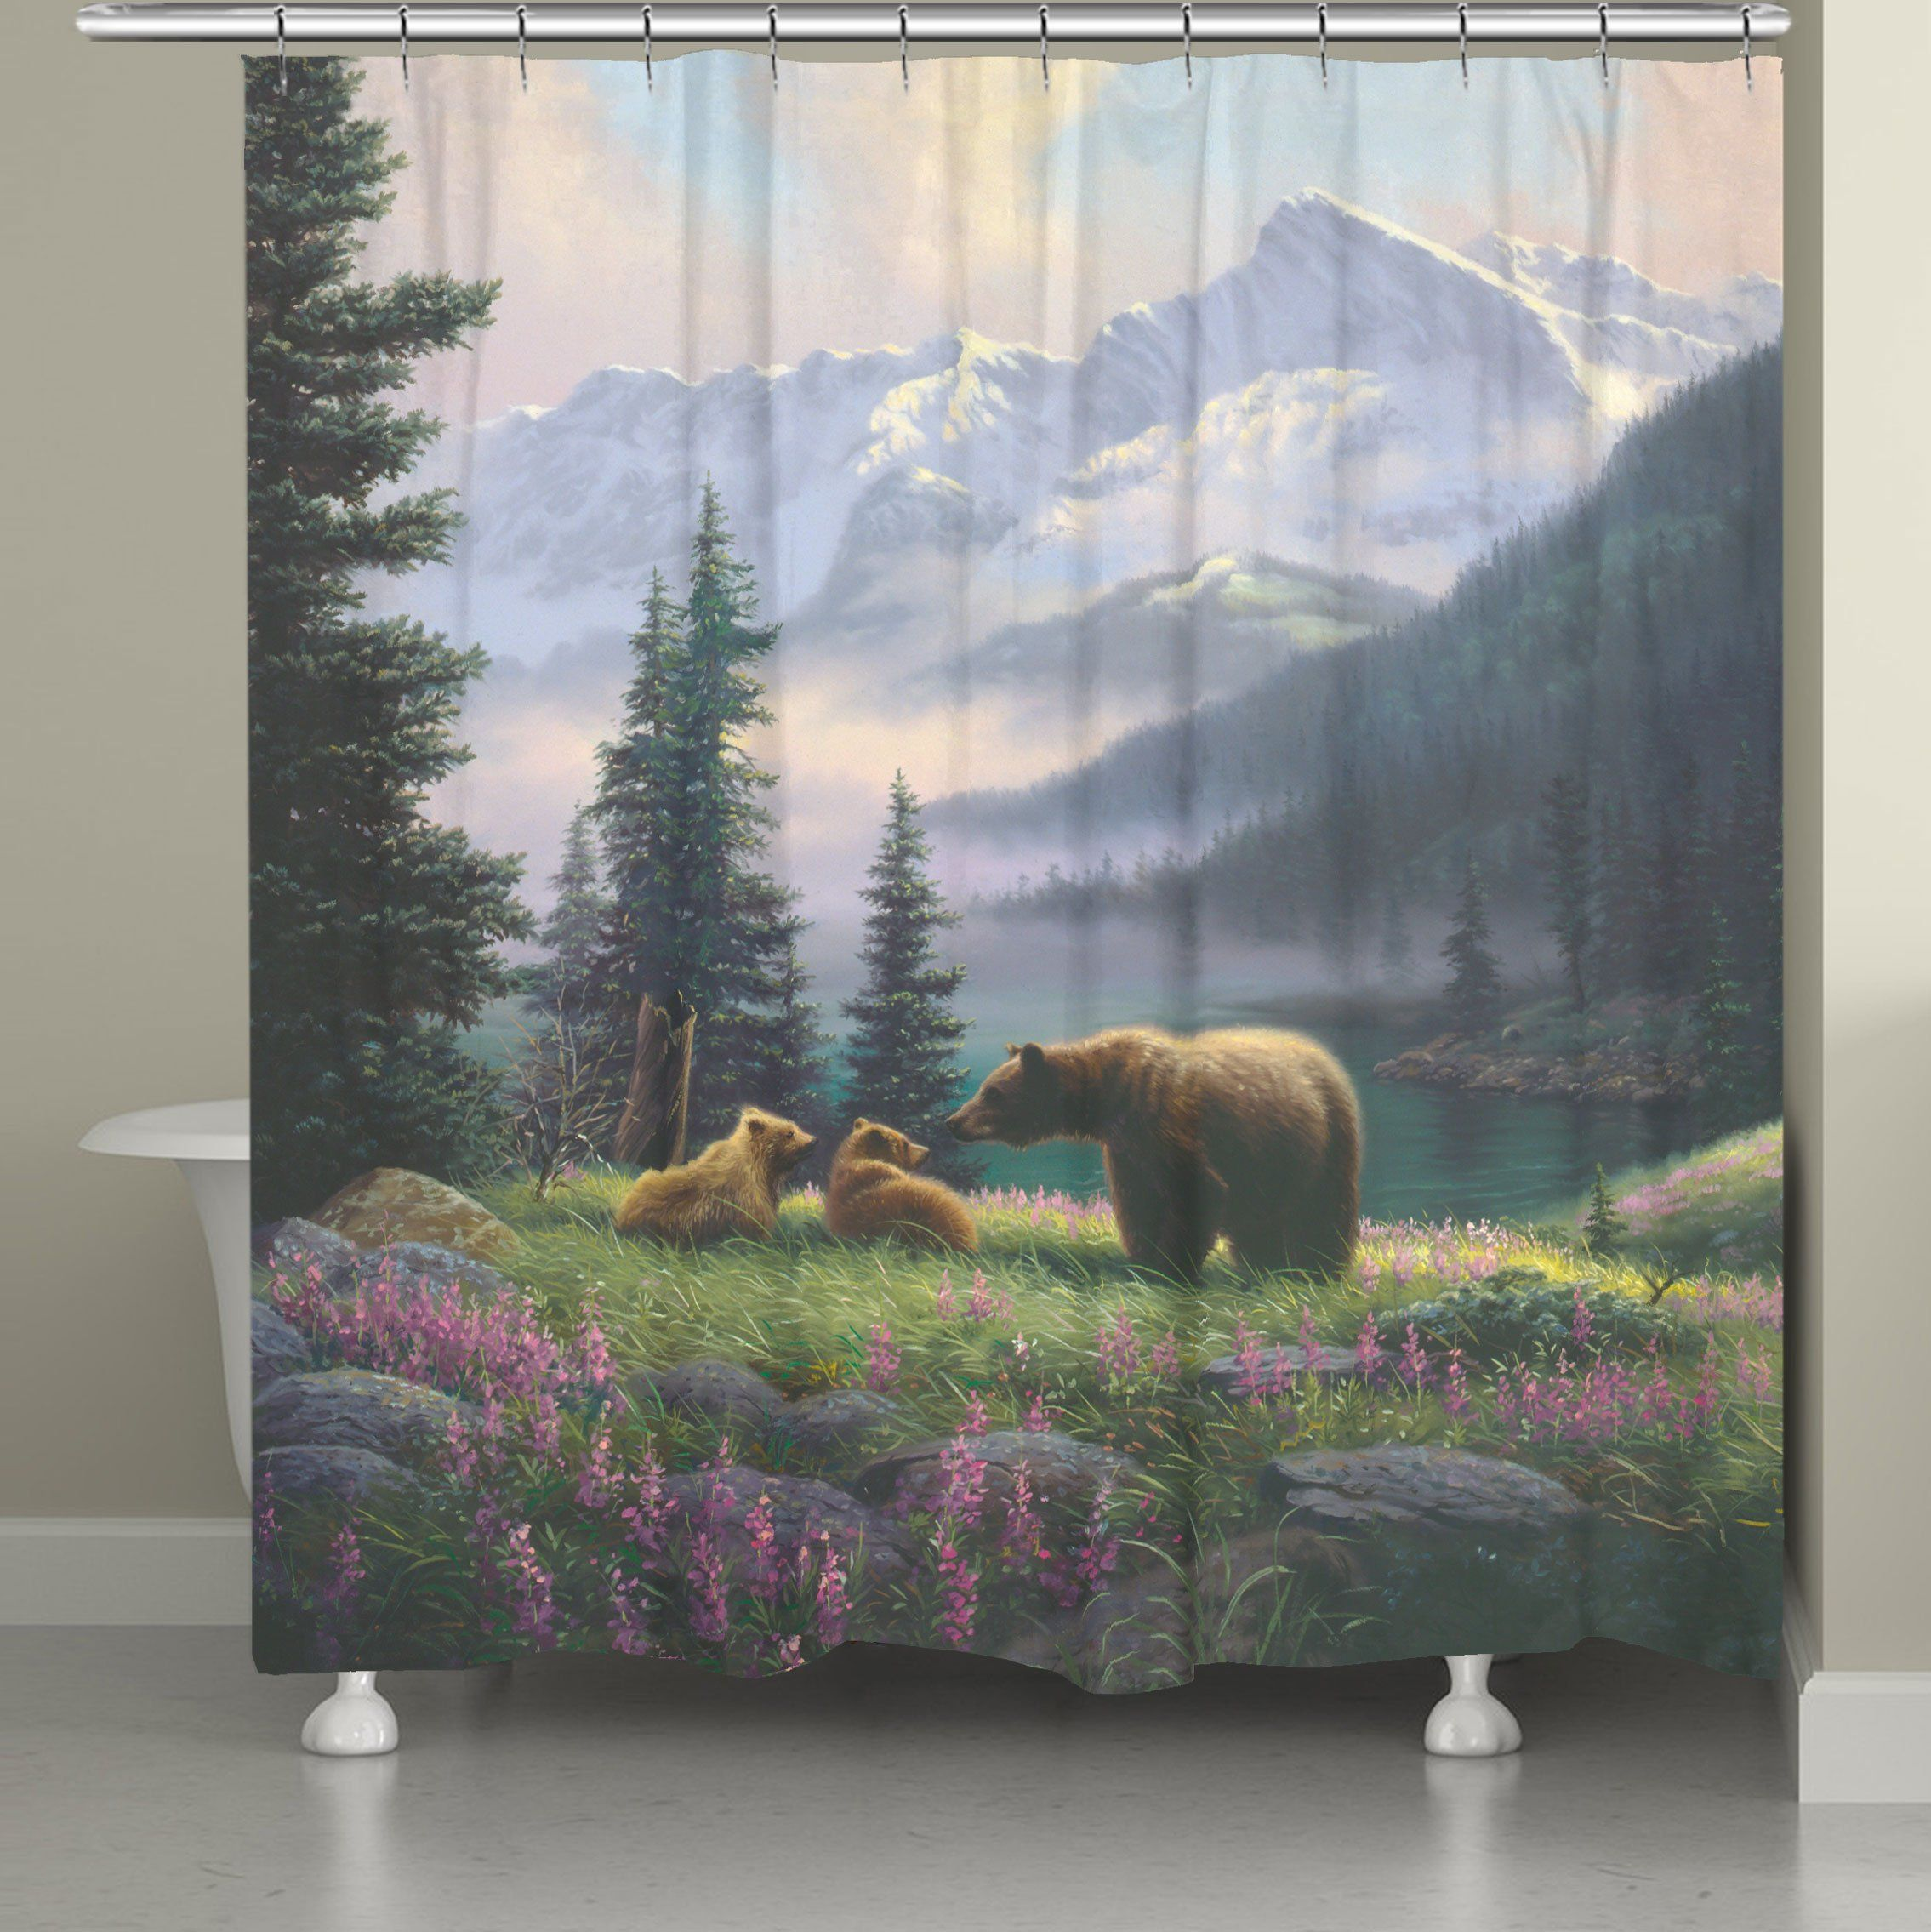 Mountain Bear With Cubs Shower Curtain In 2020